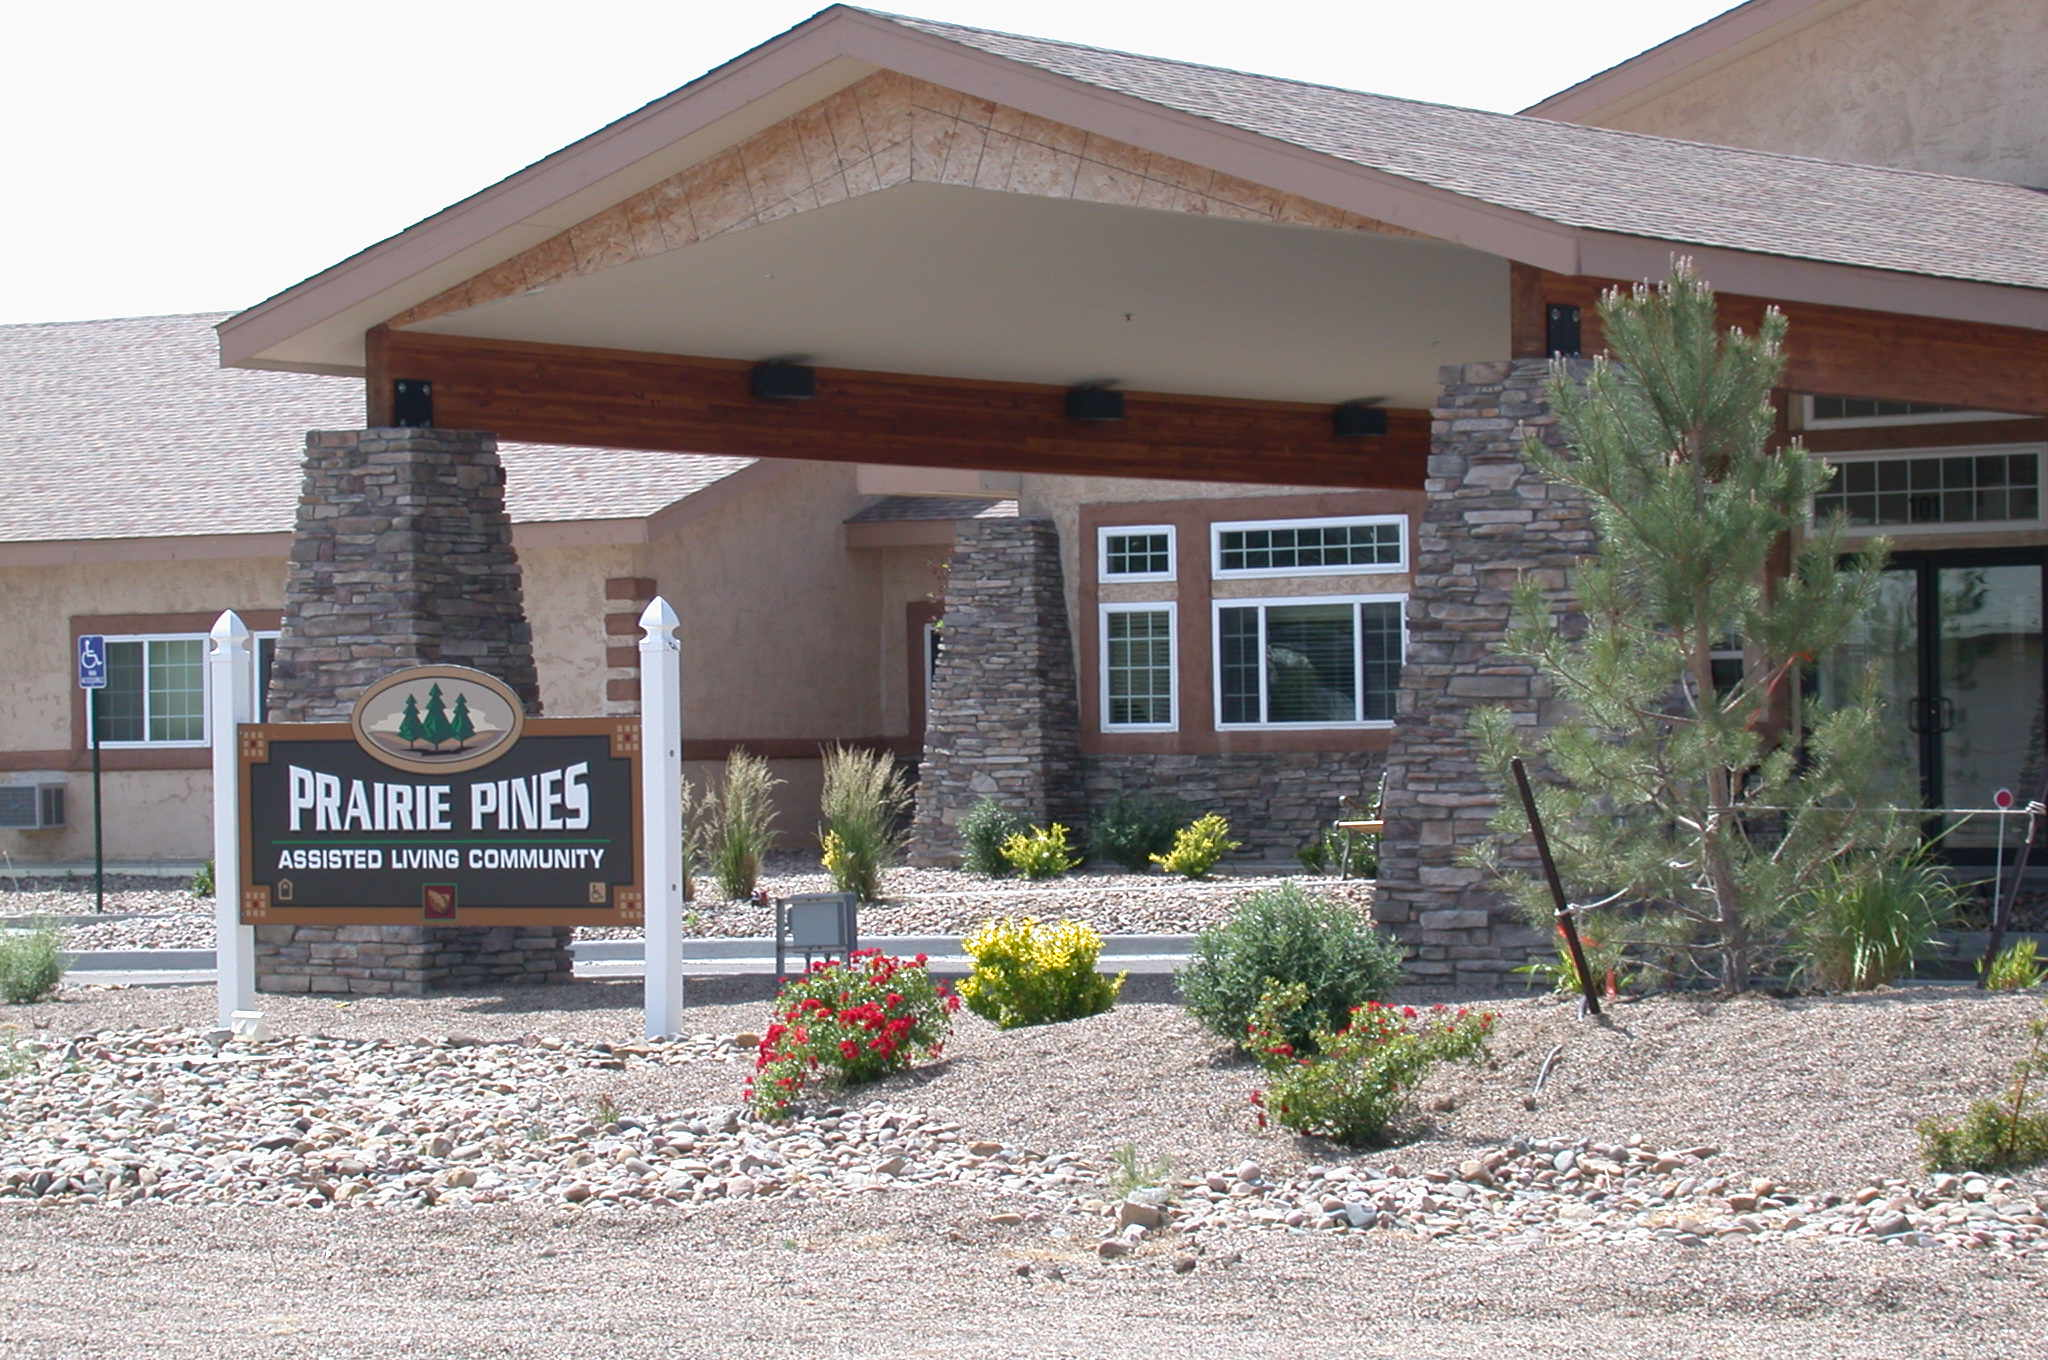 Prairie Pines Assisted Living Community